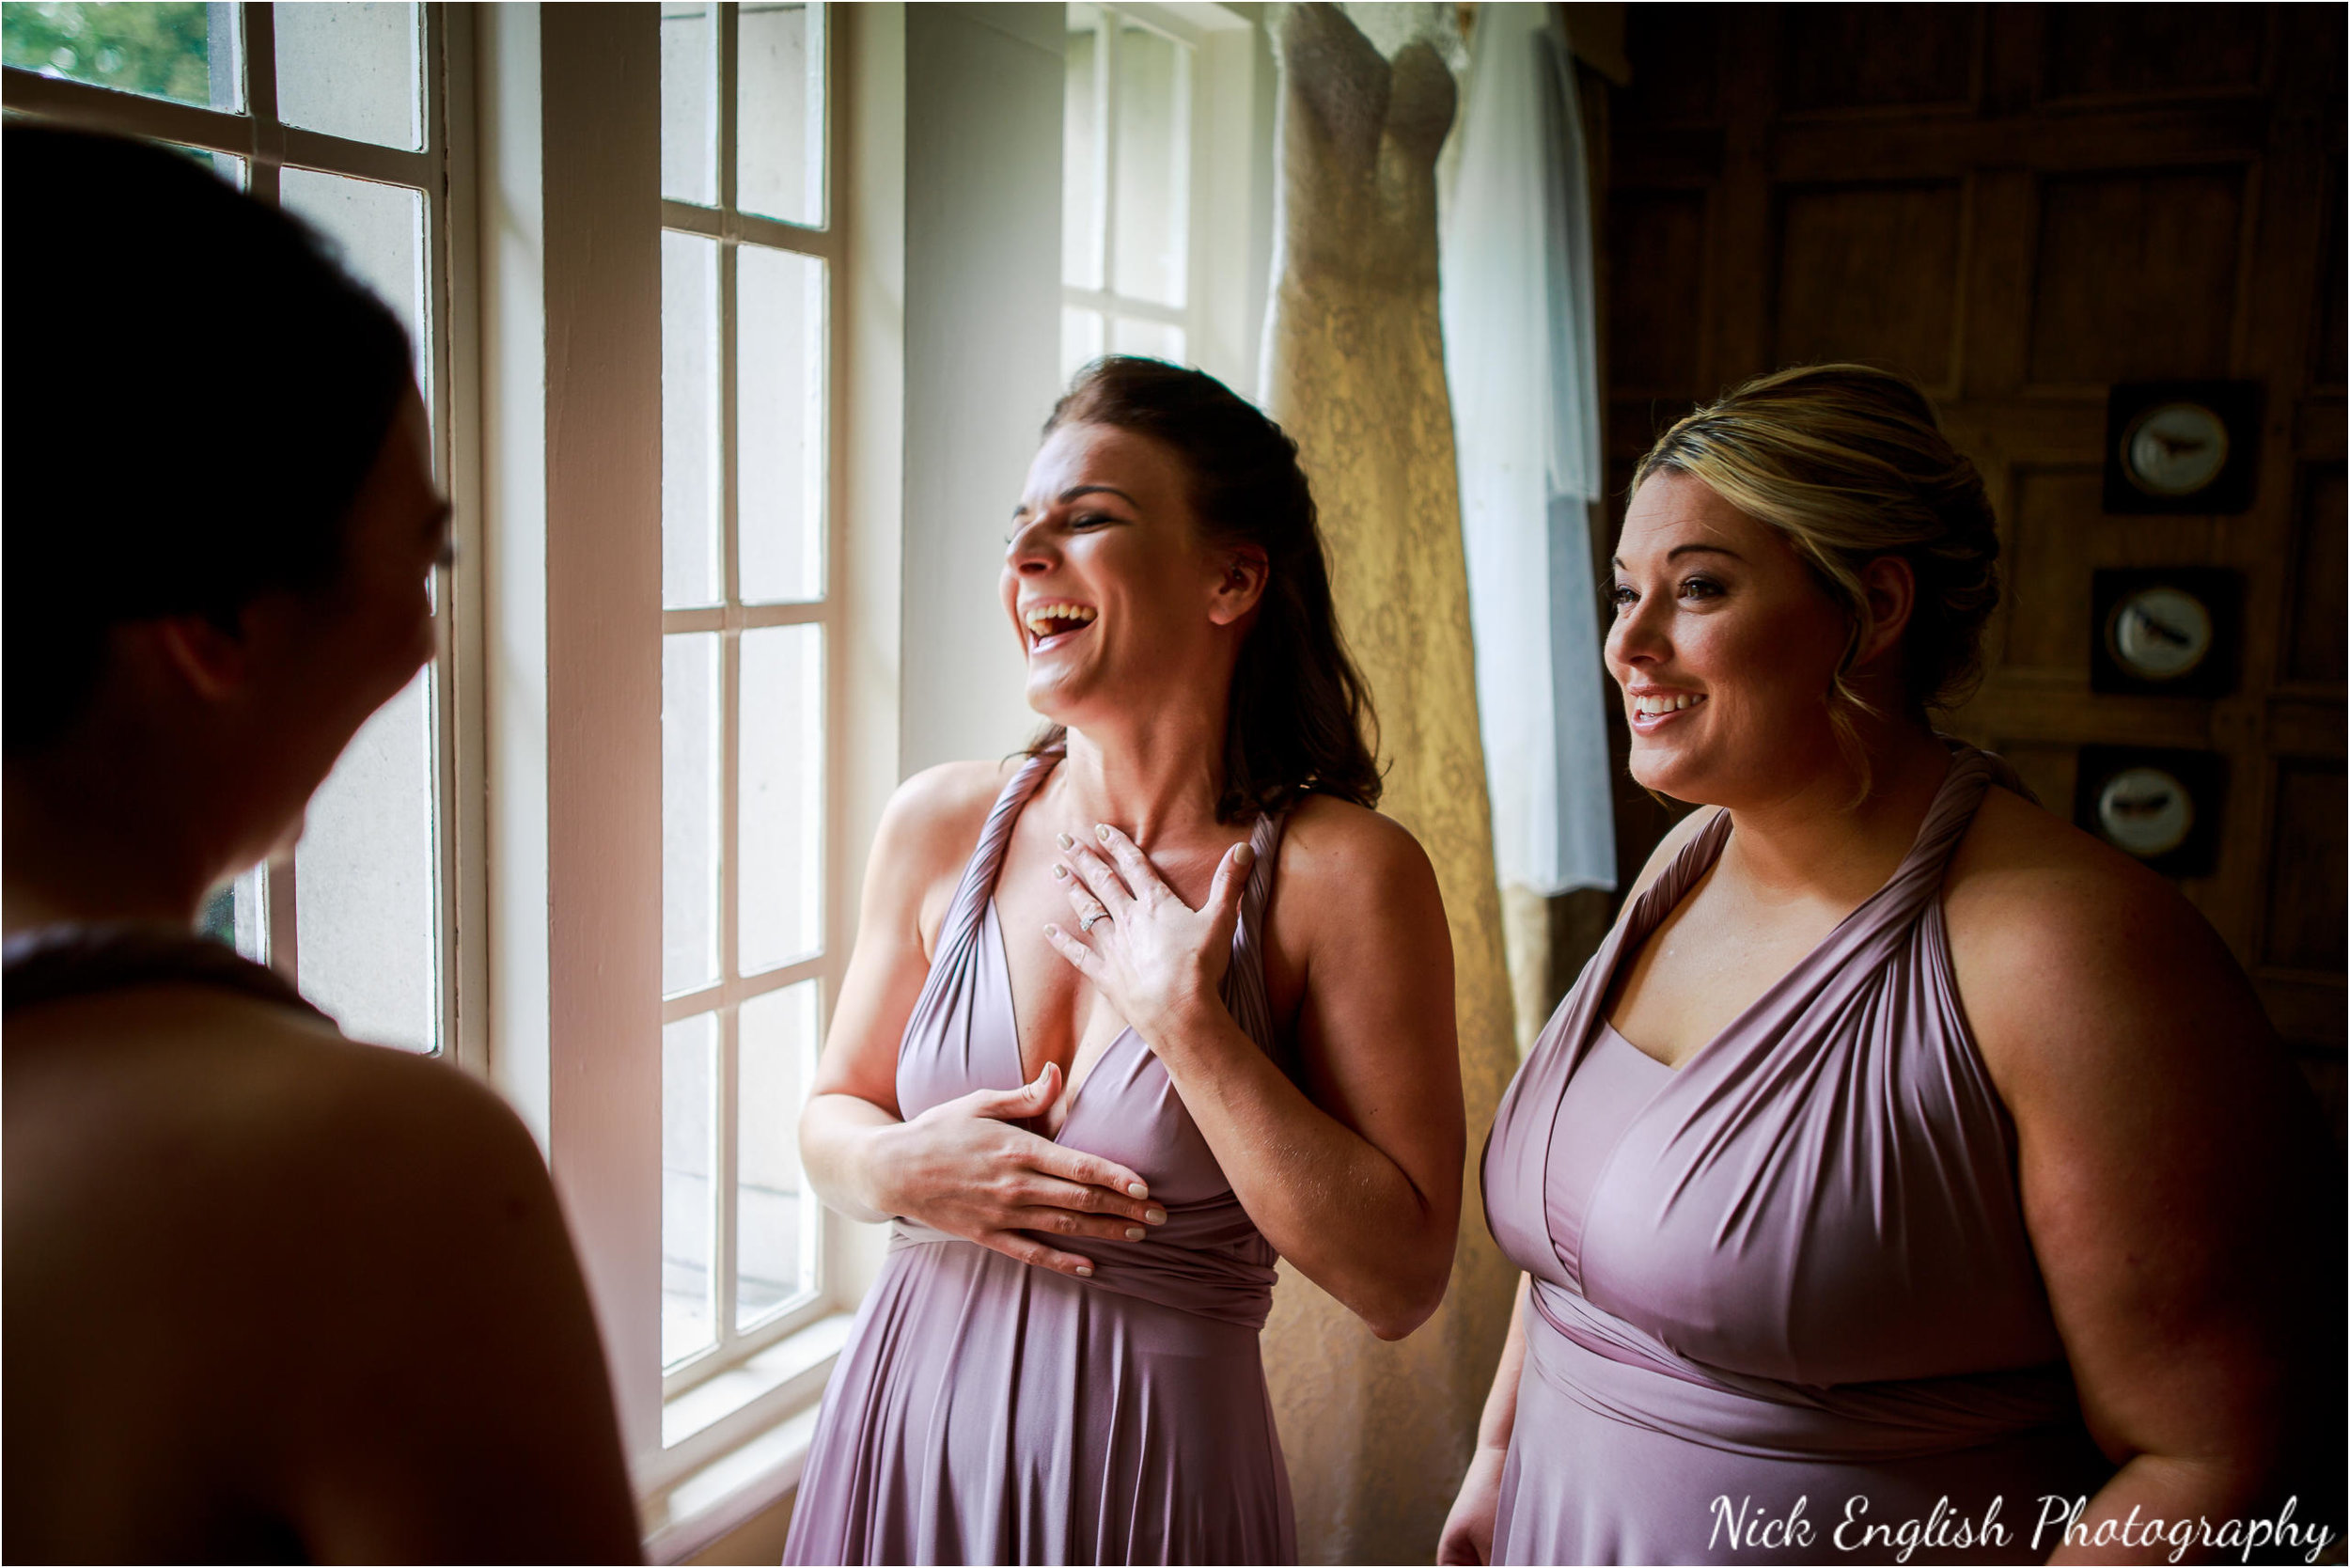 Alison James Wedding Photographs at Eaves Hall West Bradford 52jpg.jpeg